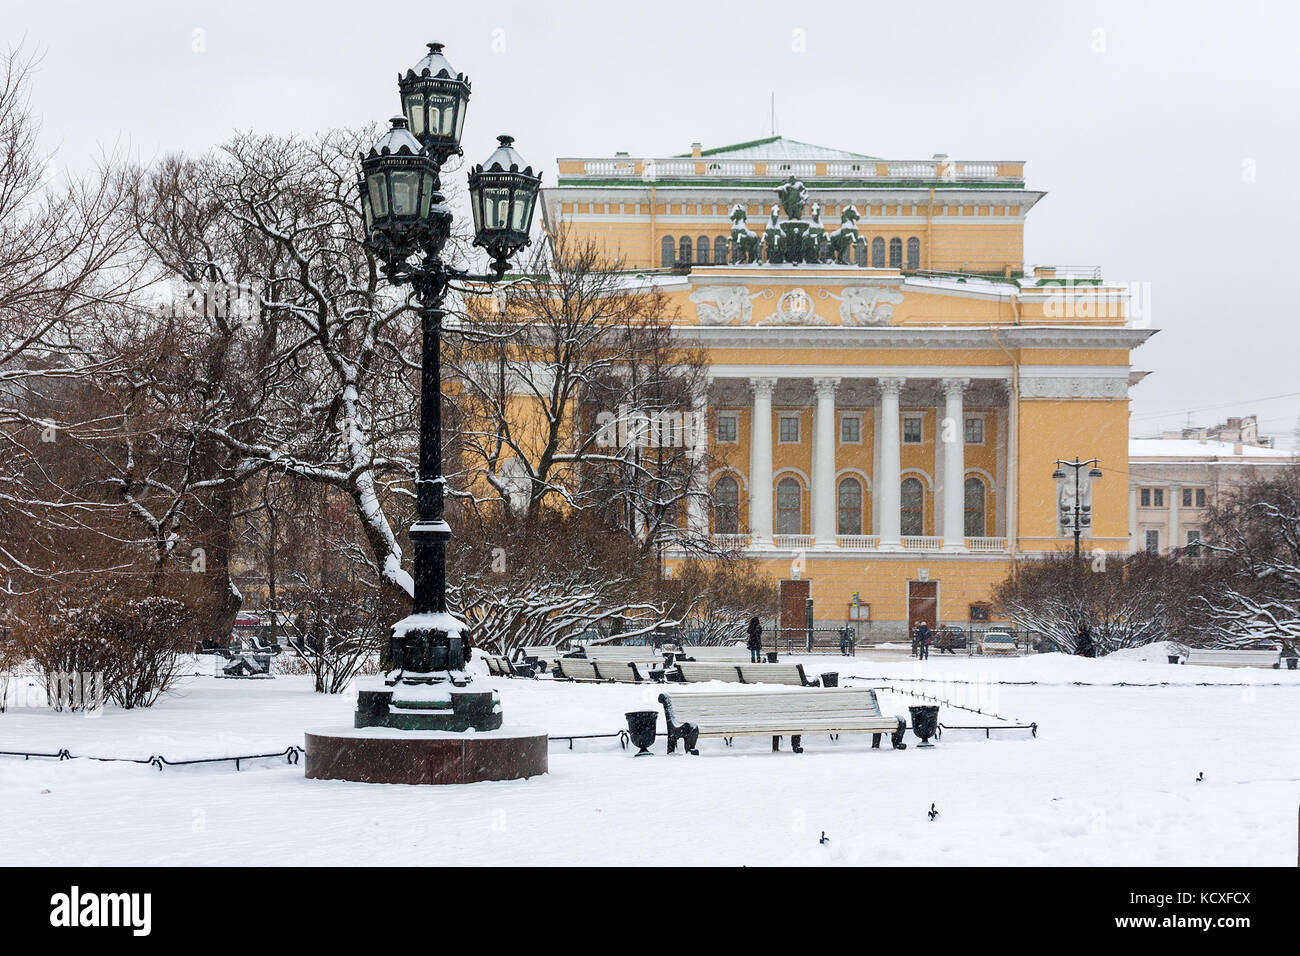 Historical landmark and touristic spot in Saint Petersburg, Russia: historical Alexandrinsky theater and square Stock Photo